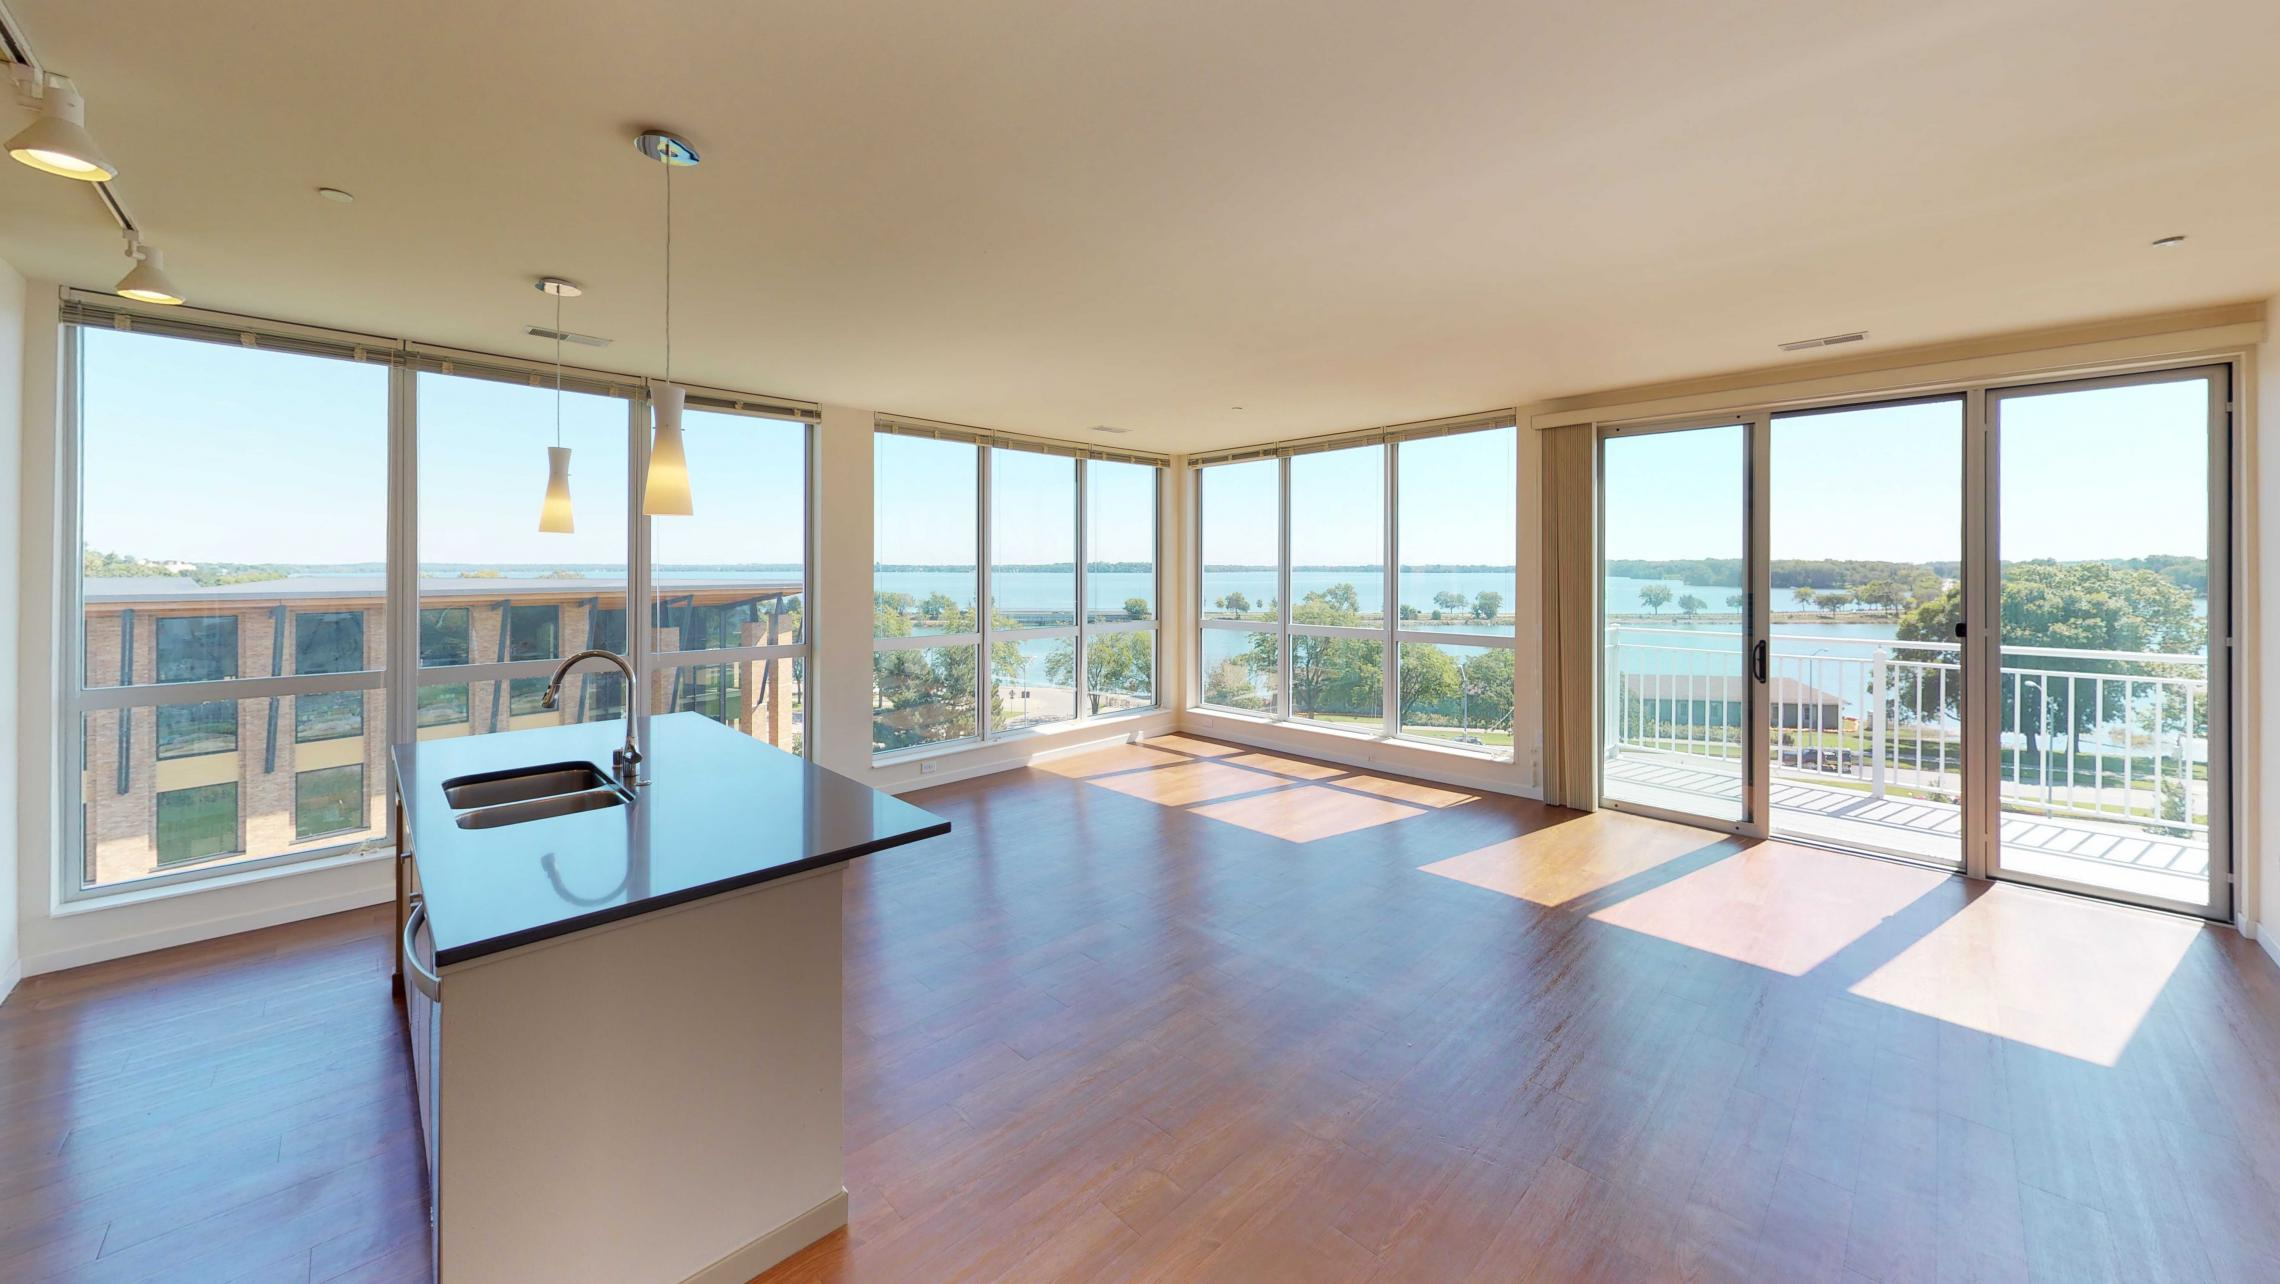 Apartment-525-Modern-Lake view-Luxury-Stunning-Views-Balcony-Capitol-lifestyle